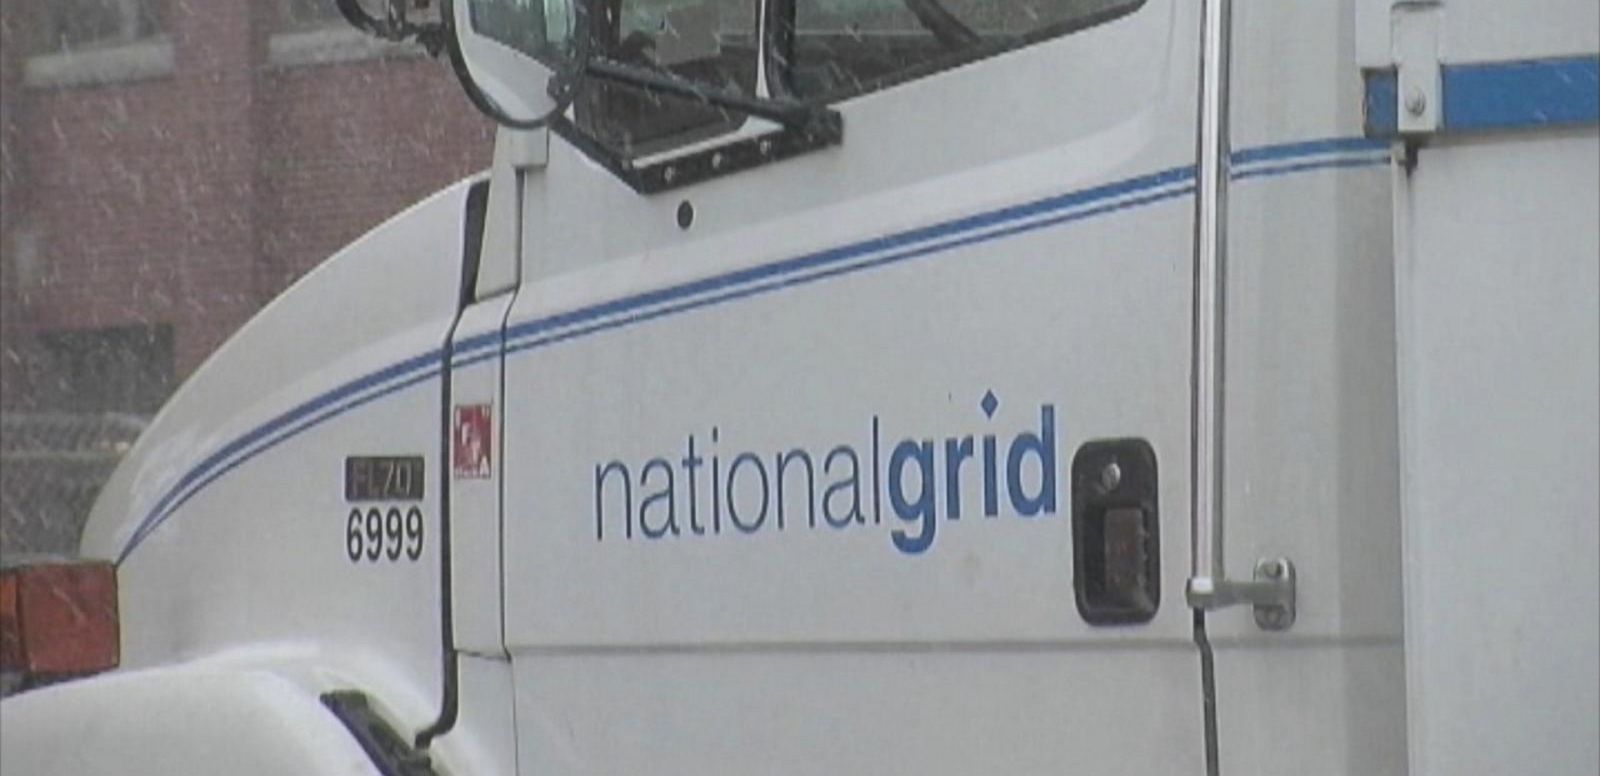 VIDEO: Blizzard Knocks Out Power for Fewer Than Expected